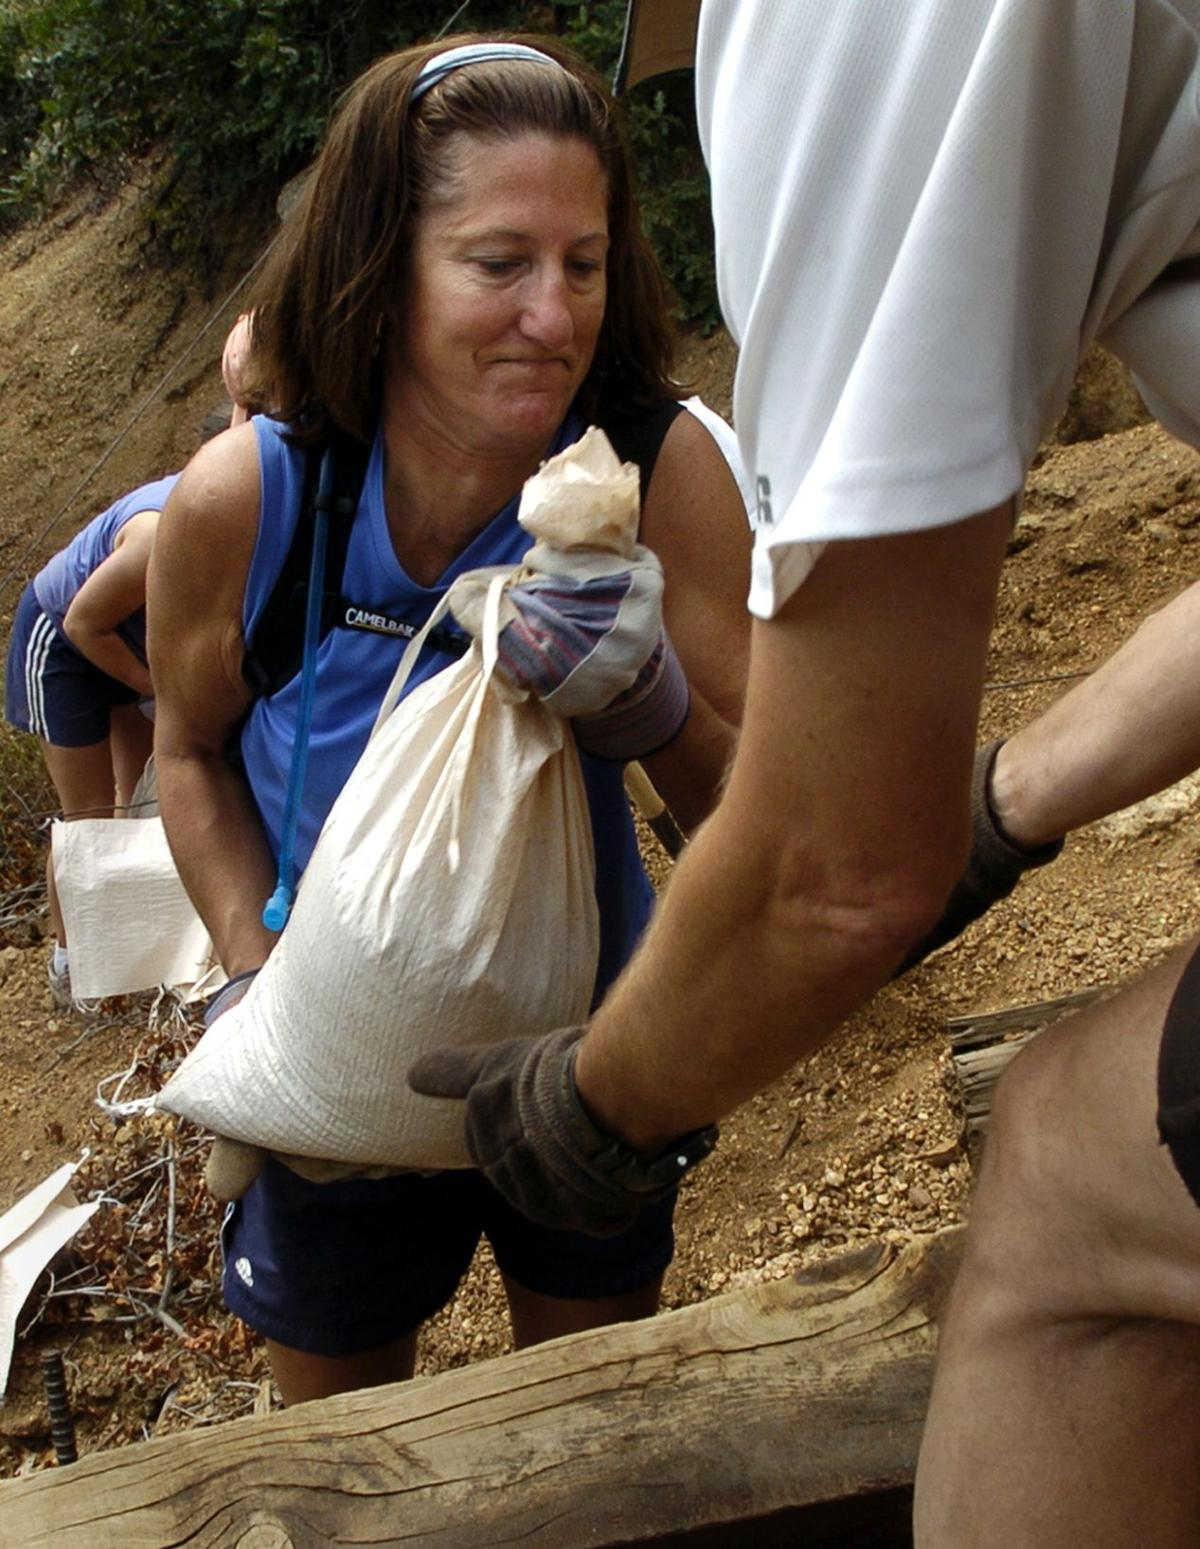 Laura Ryan hands a full bag of sand to David Wall while Caroline Williams fills another one in the background while working on the Incline Trail to the top of Mount Manitou in Manitou Springs, Colo., Saturday, Sept. 10, 2005. The volunteers were using the sandbags to help stop the erosion along the trail from the summer storms. Photo by Christian Murdock/The Gazette